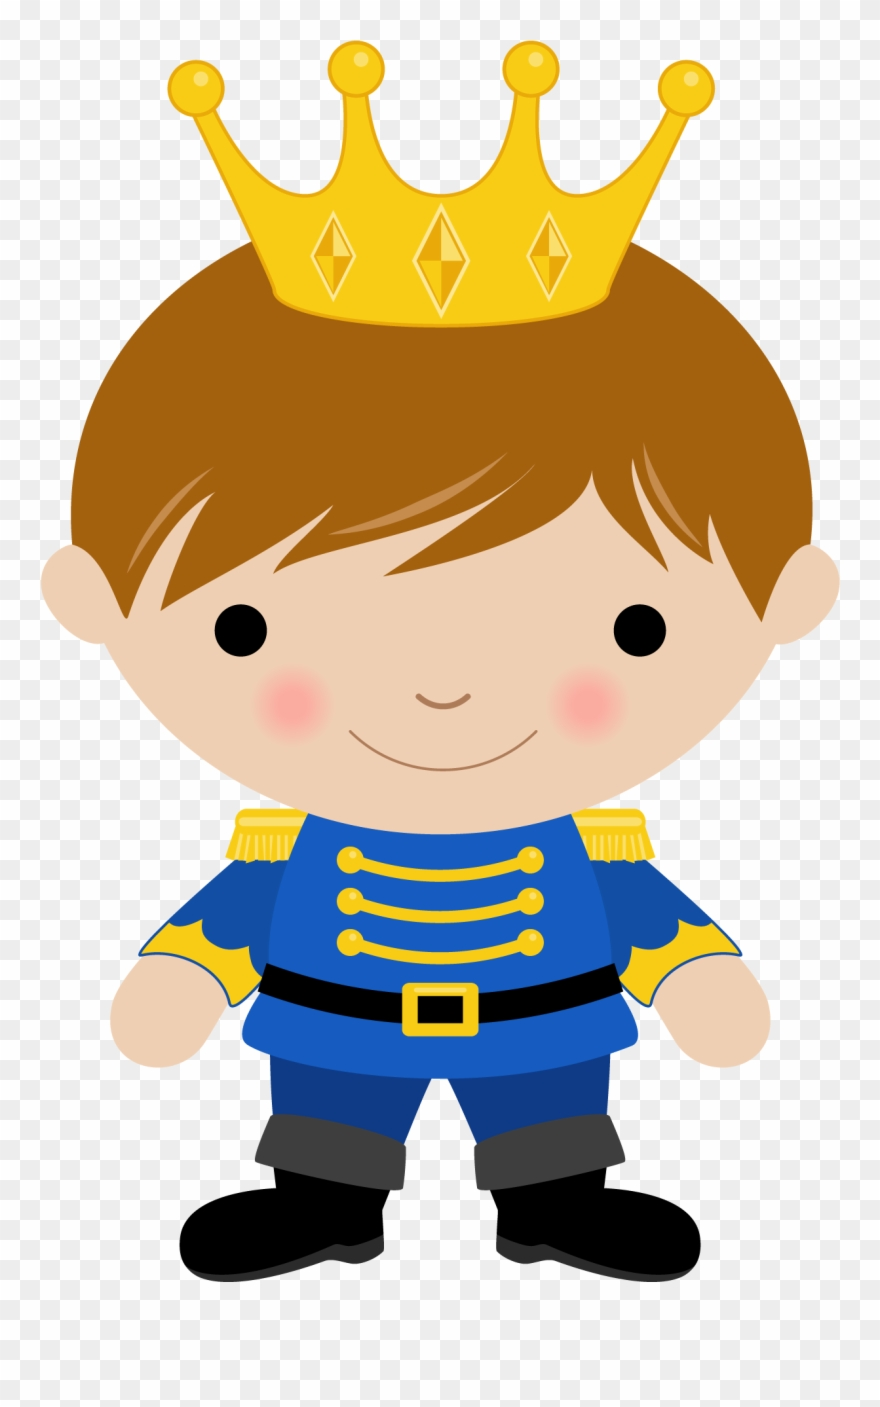 hight resolution of printable crafts printables prince crown prince prince clipart png transparent png